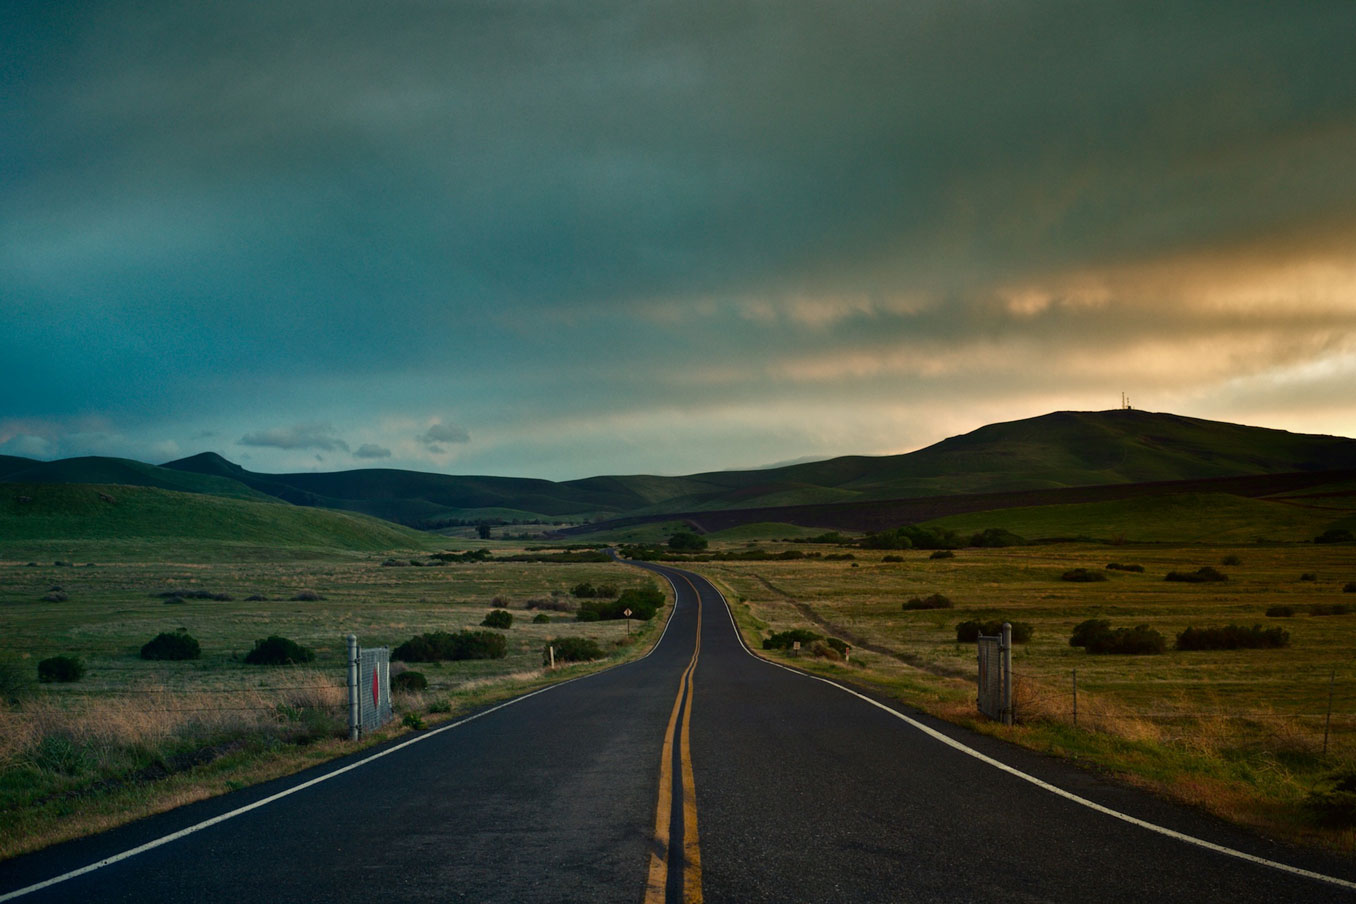 A long road, running in to the horizon